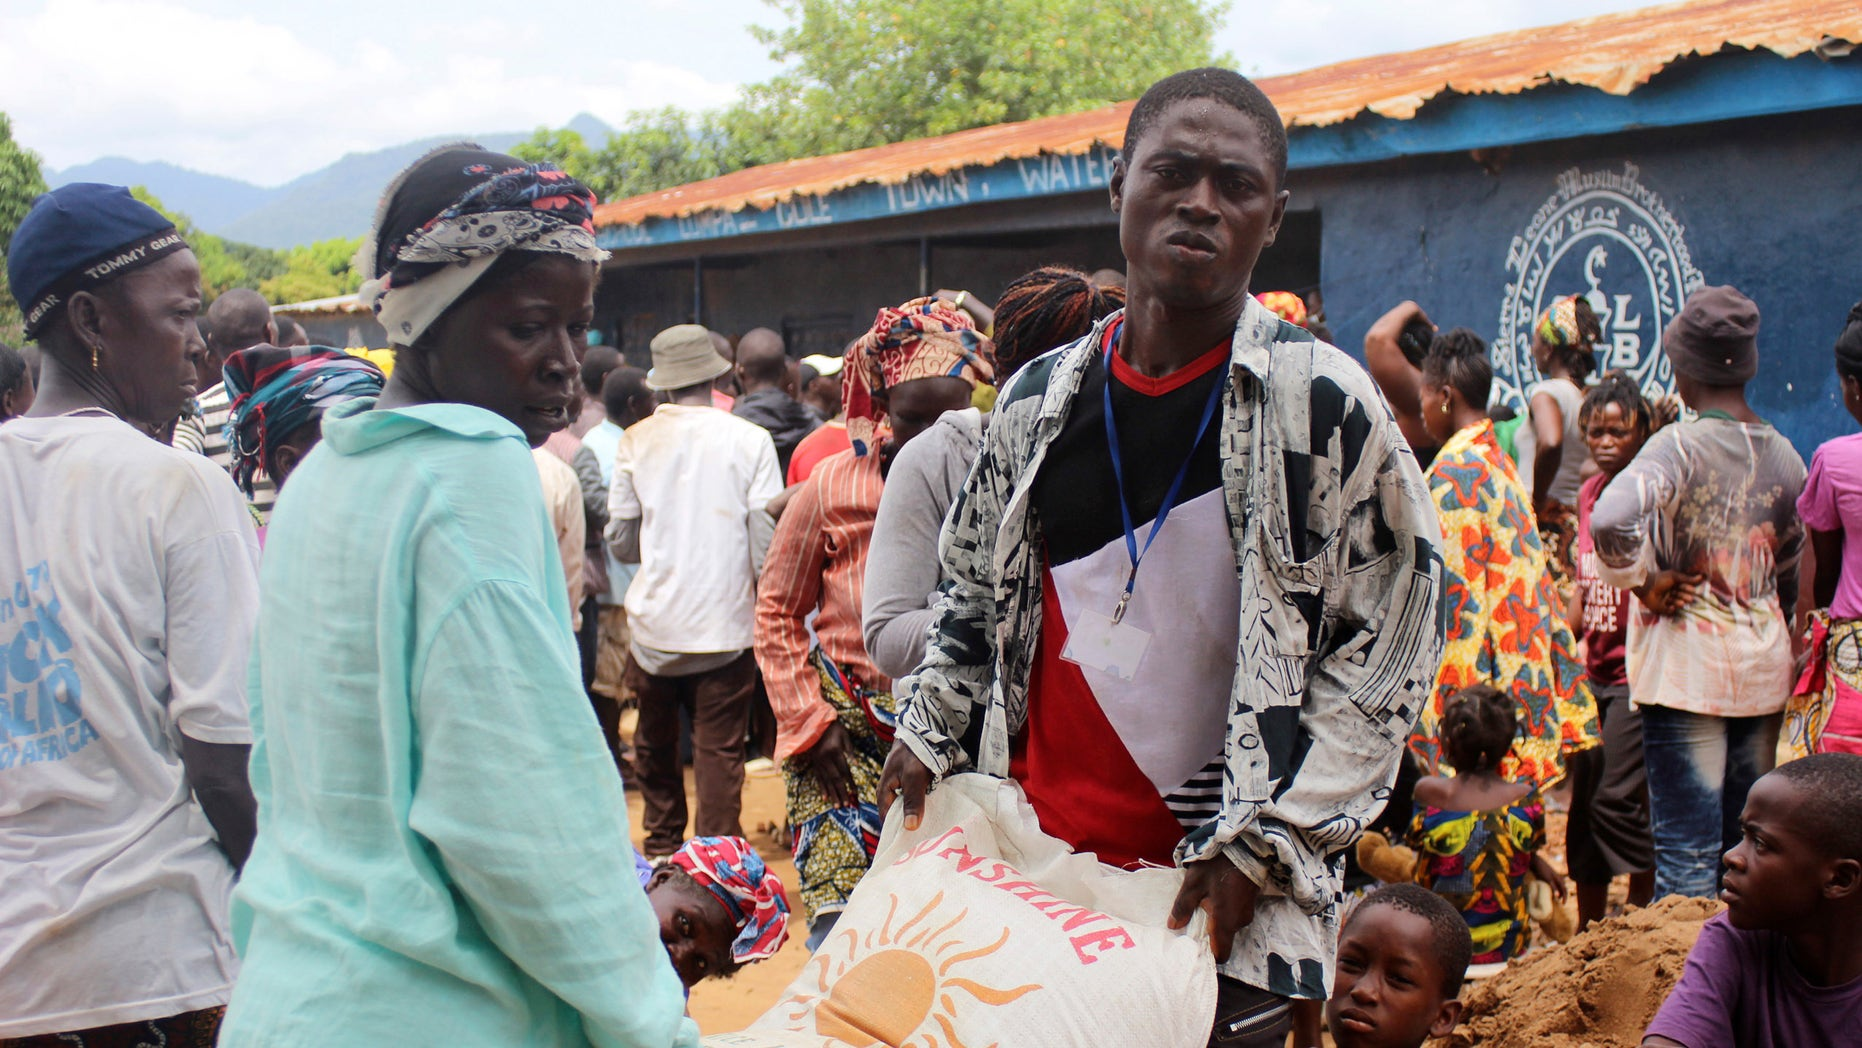 People carry a bag of rice at a World Food Programme distribution point in Freetown October 18, 2014. The U.N.'s World Food Programme and Food and Agriculture Organisation say border and market closures, quarantines and movement restrictions, and widespread fear of Ebola have led to food scarcity, panic buying and price increases, especially in Sierra Leone and Liberia. The WFP is trying to provide food to around 1 million people in the three worst-affected countries. REUTERS/Josephus Olu-Mamma